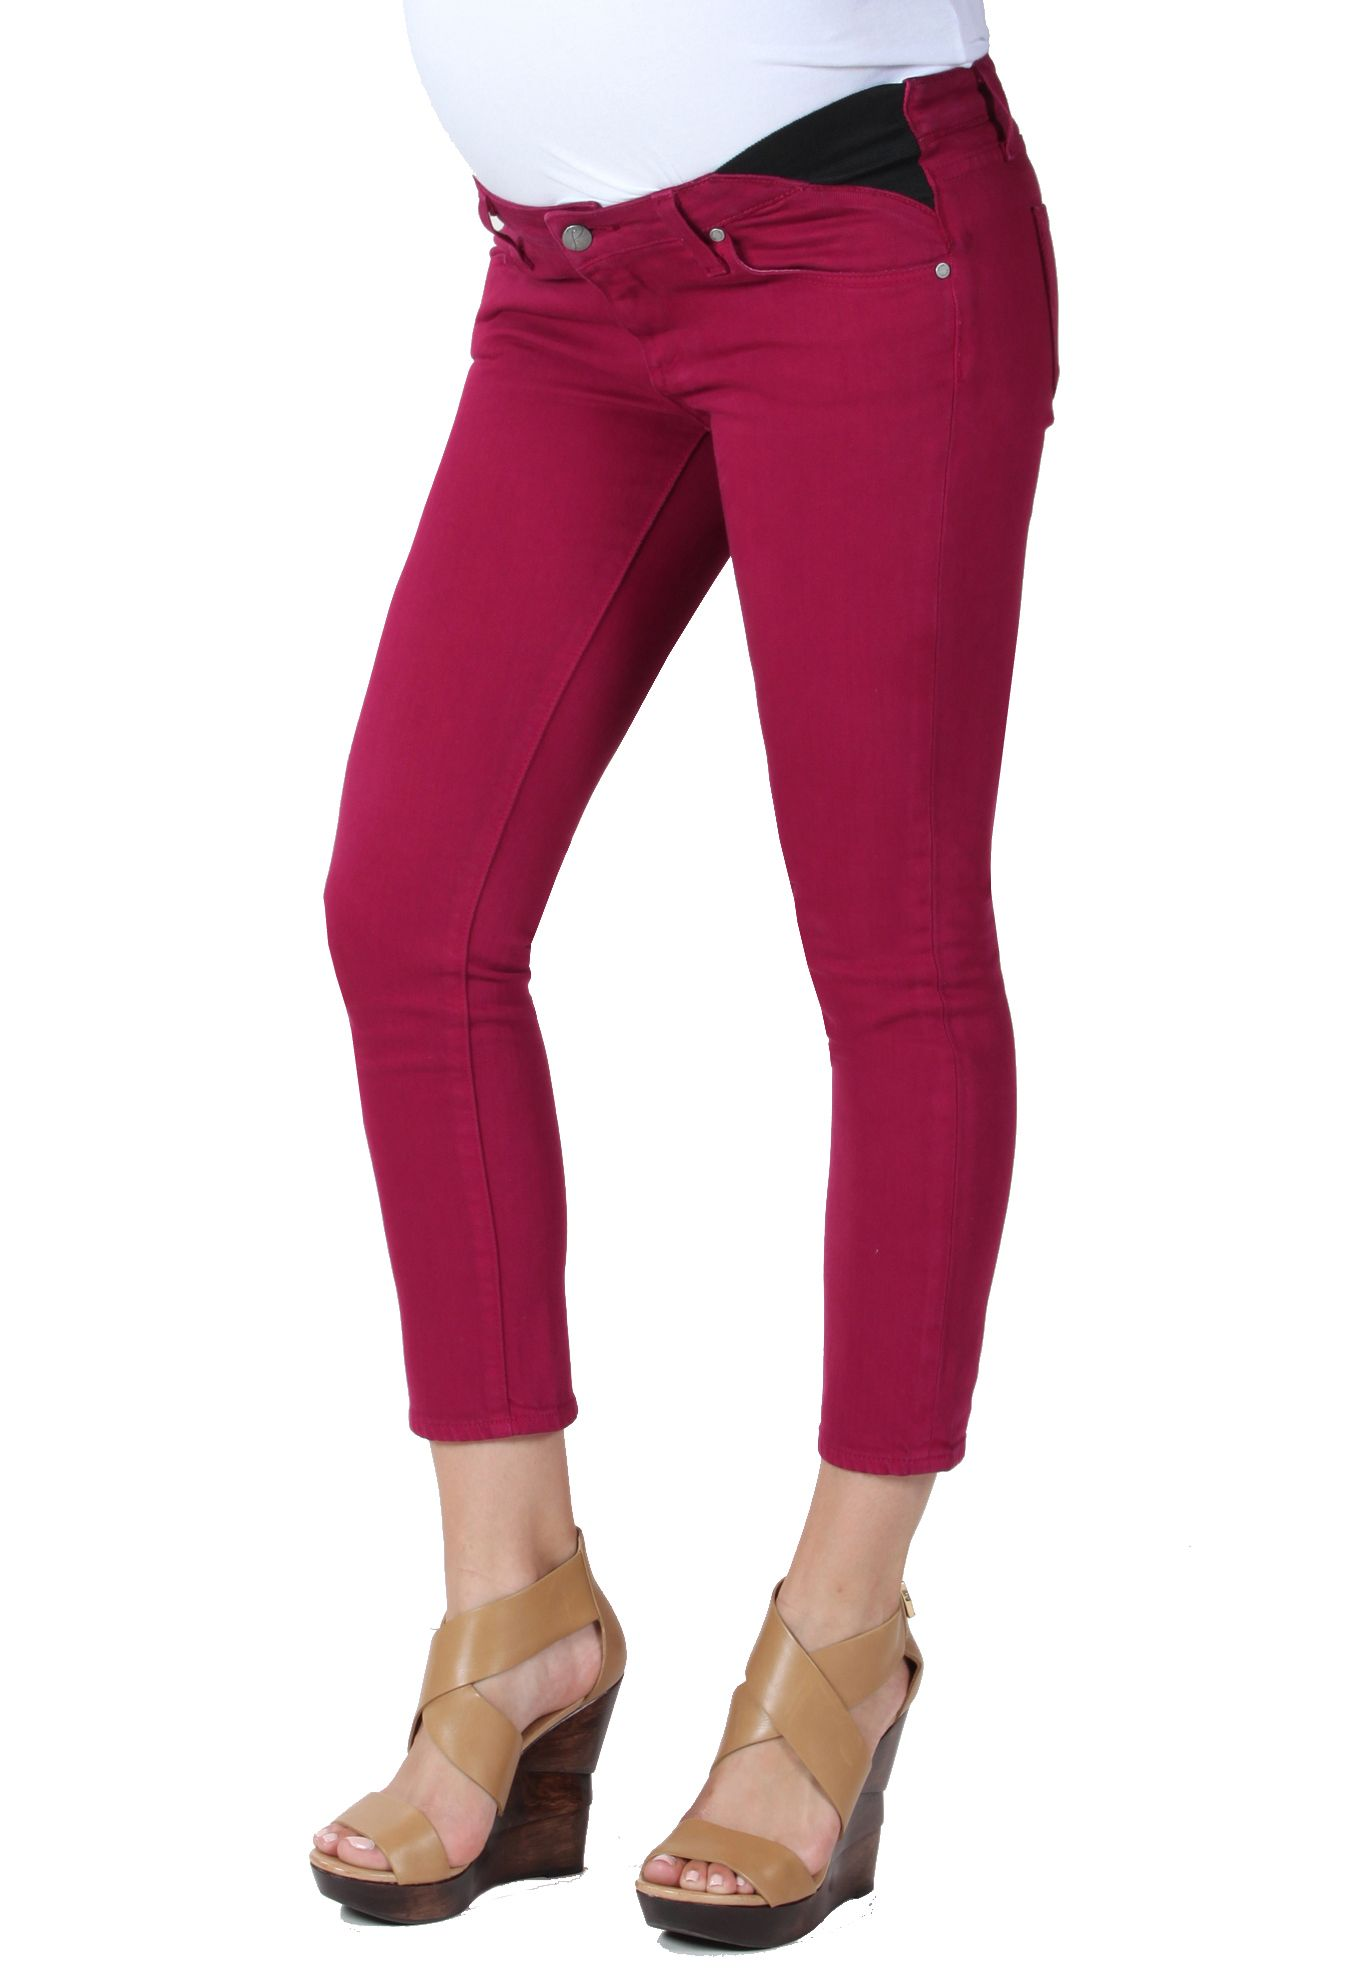 9d04fbdcfc31f Union Kylie Crop in Bonita - Dark Pink Under Belly Capri Designer Maternity  Jeans from Paige Premium